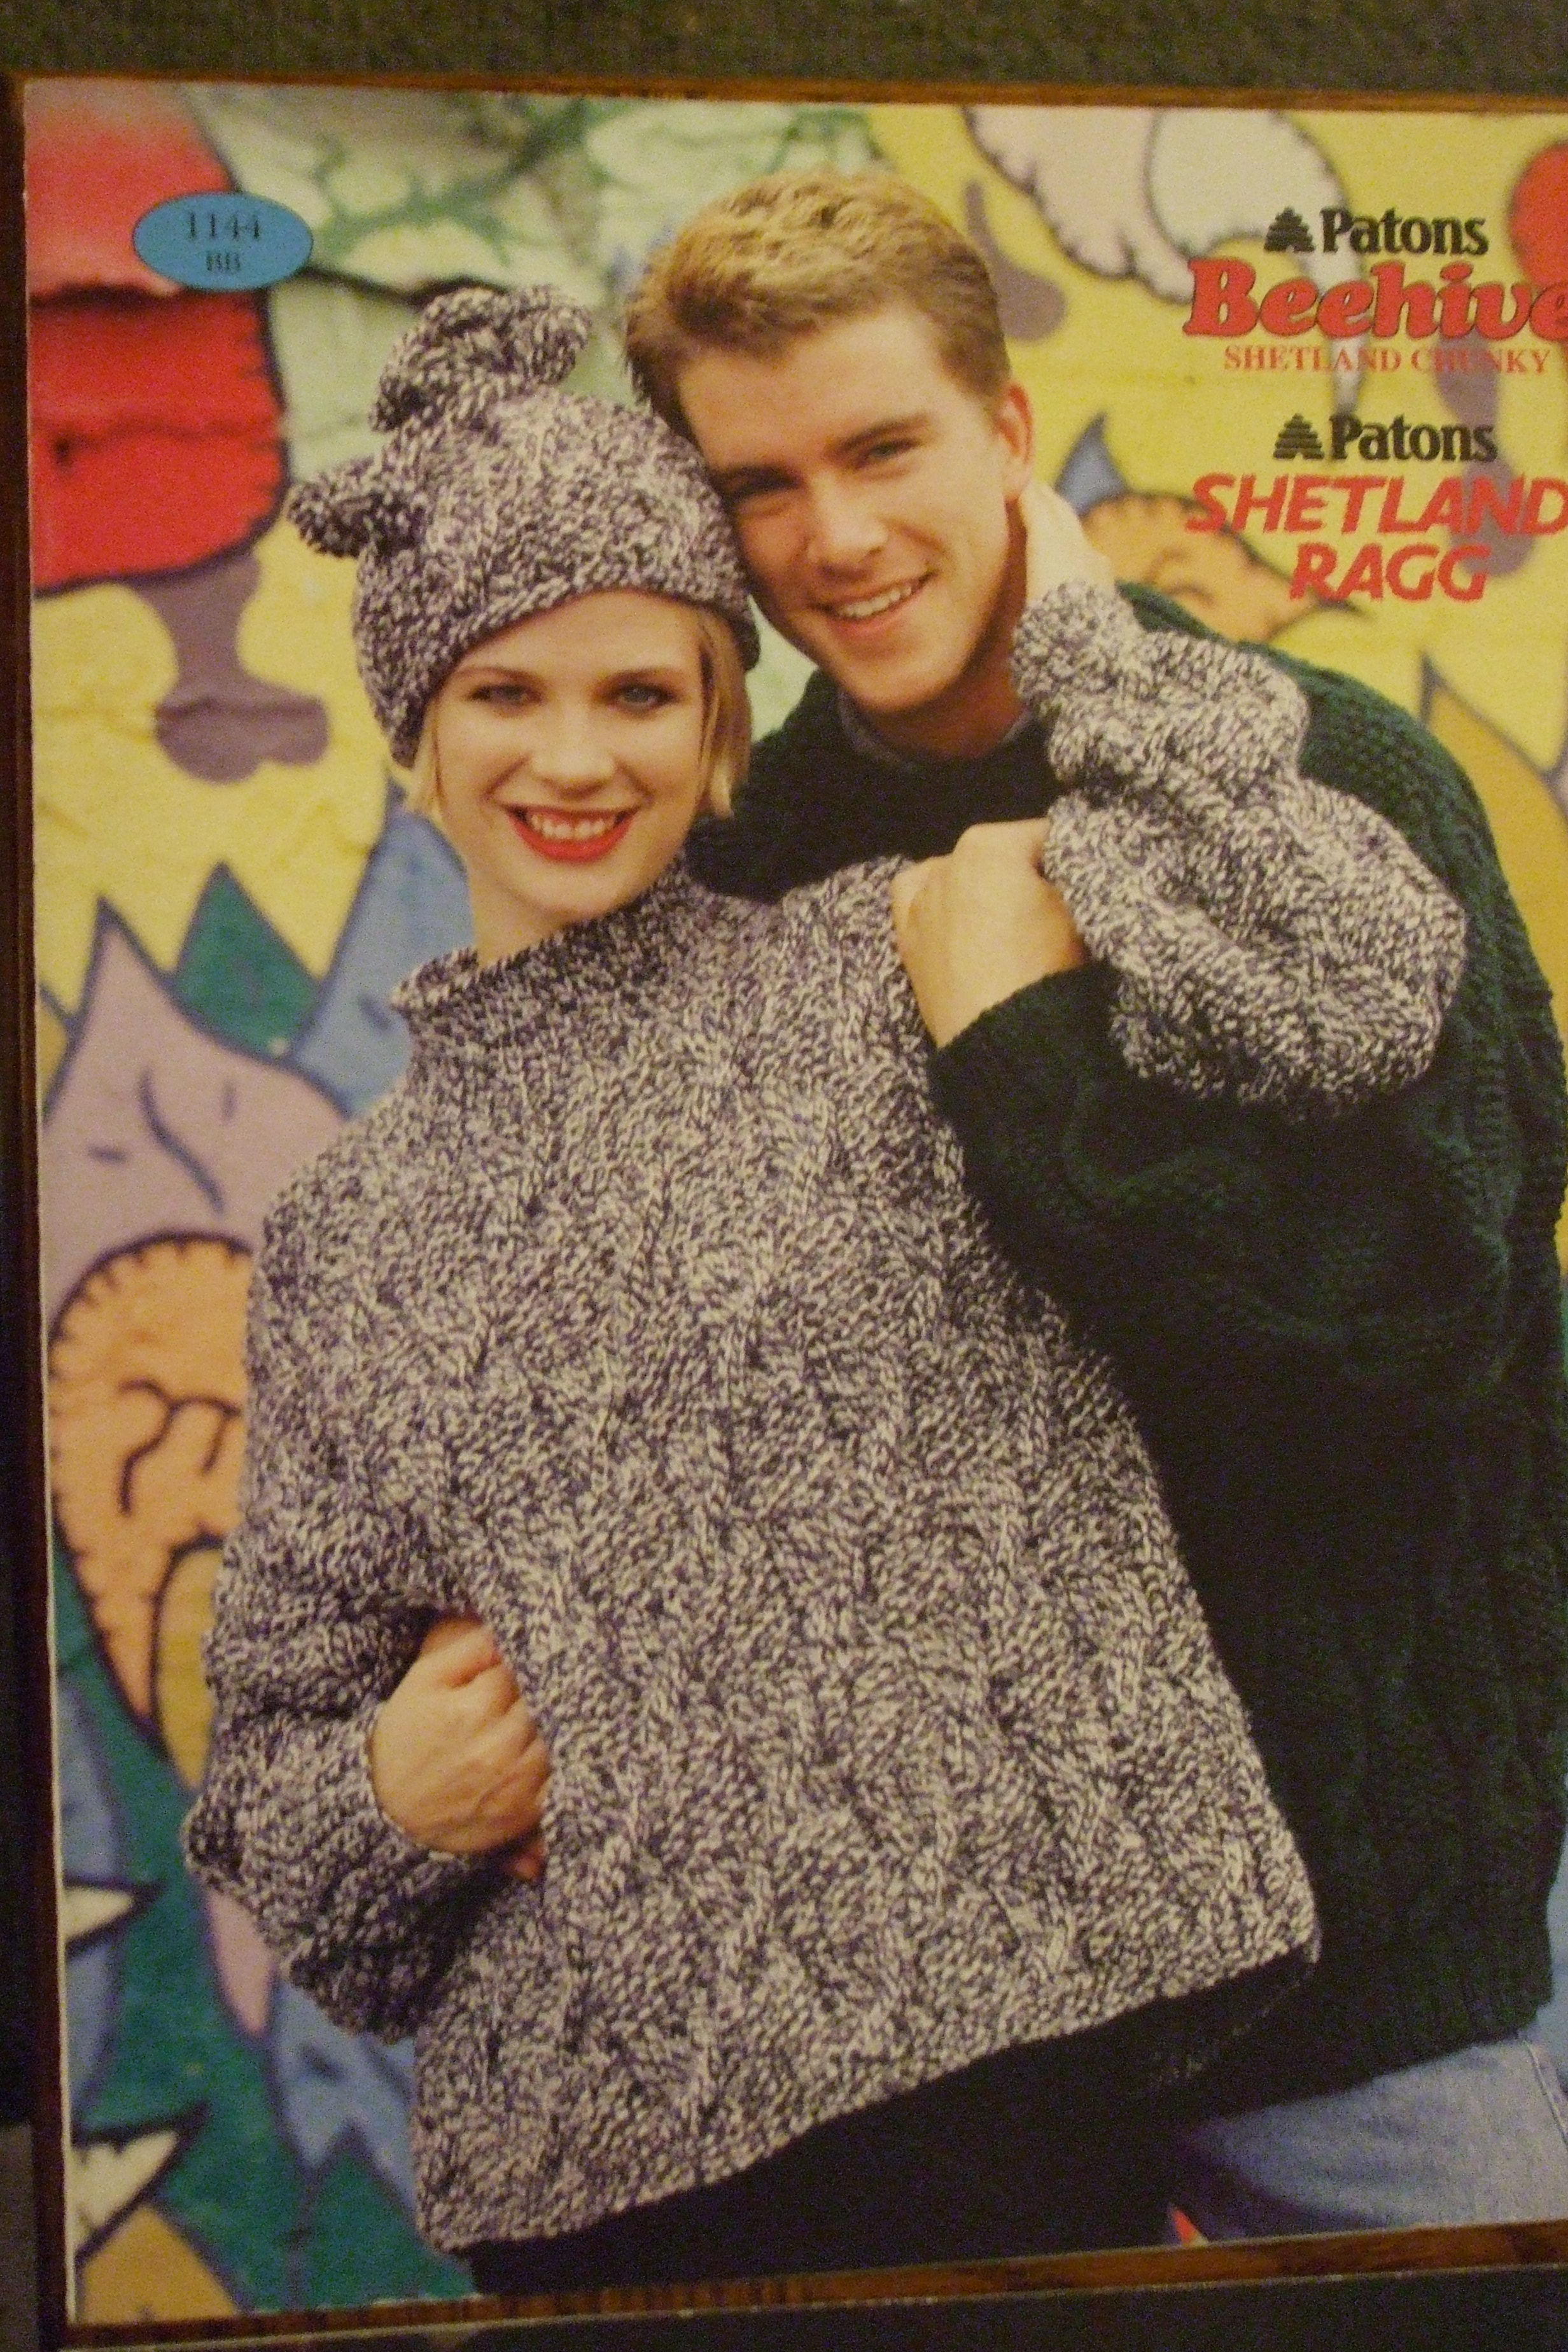 Knitting Patterns For Women Men Women Knitting Patterns Sweaters Cardigans Pullovers Bernat Patons